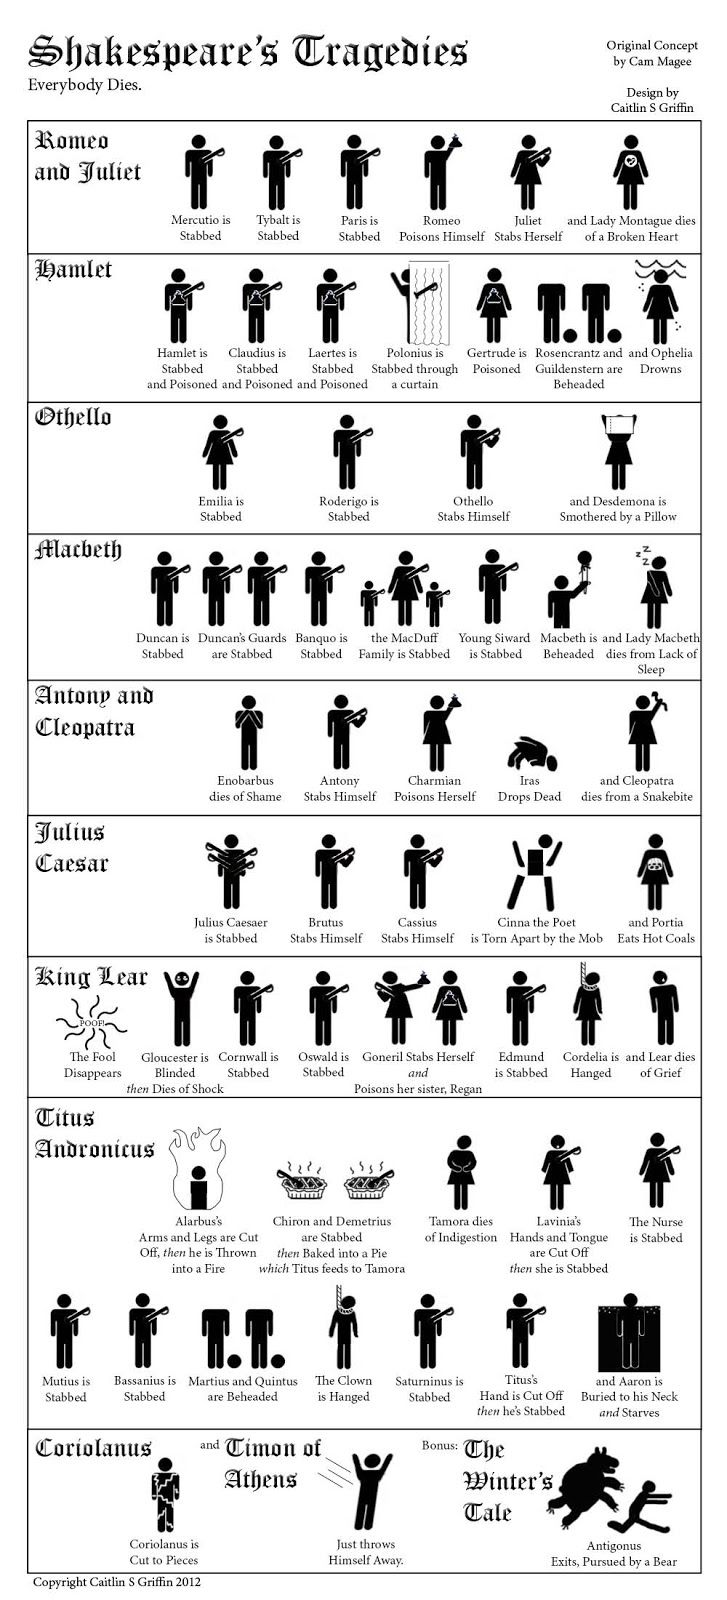 Shakespeare tragédiái: Mindenki meghal. Shakespeare's Tragedies - Everybody Dies by drownmybooks. Design by Caitlin S. Griffin. Original Concept by Cam Magee: Great!   #Infographic #Shakespeare #Tragedies